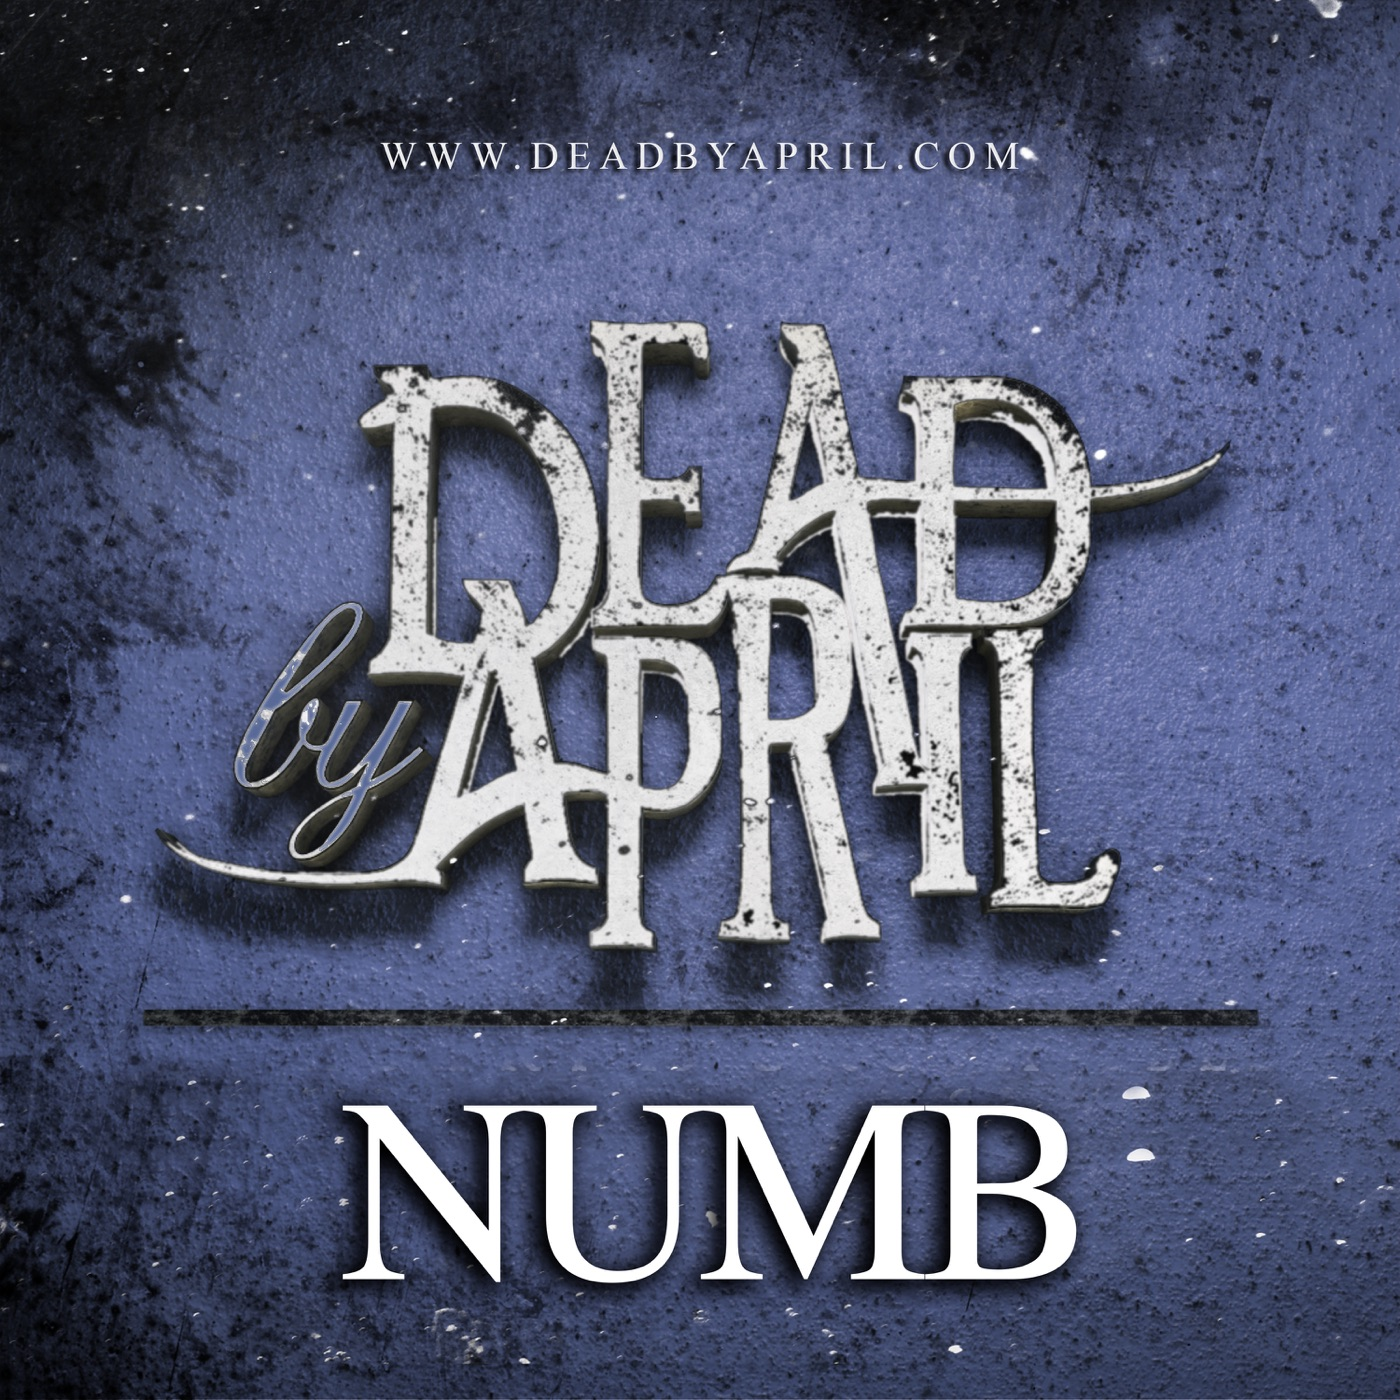 Dead by April - Numb [single] (2017)